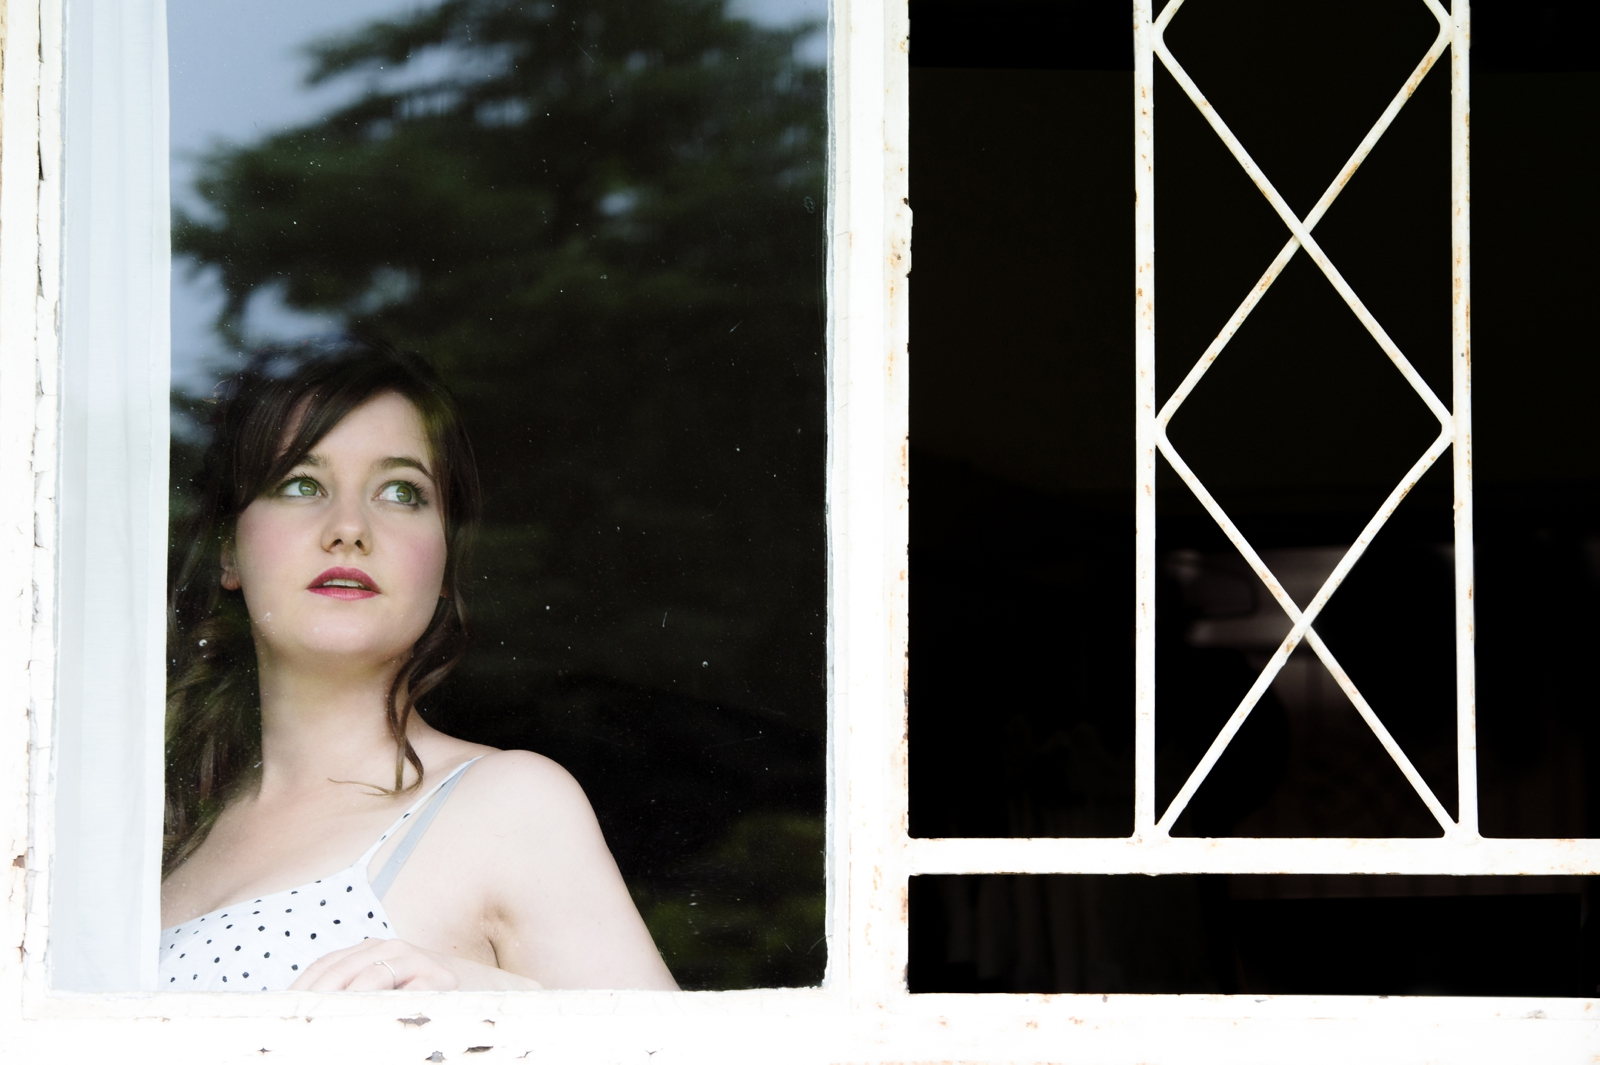 Girl looks out window